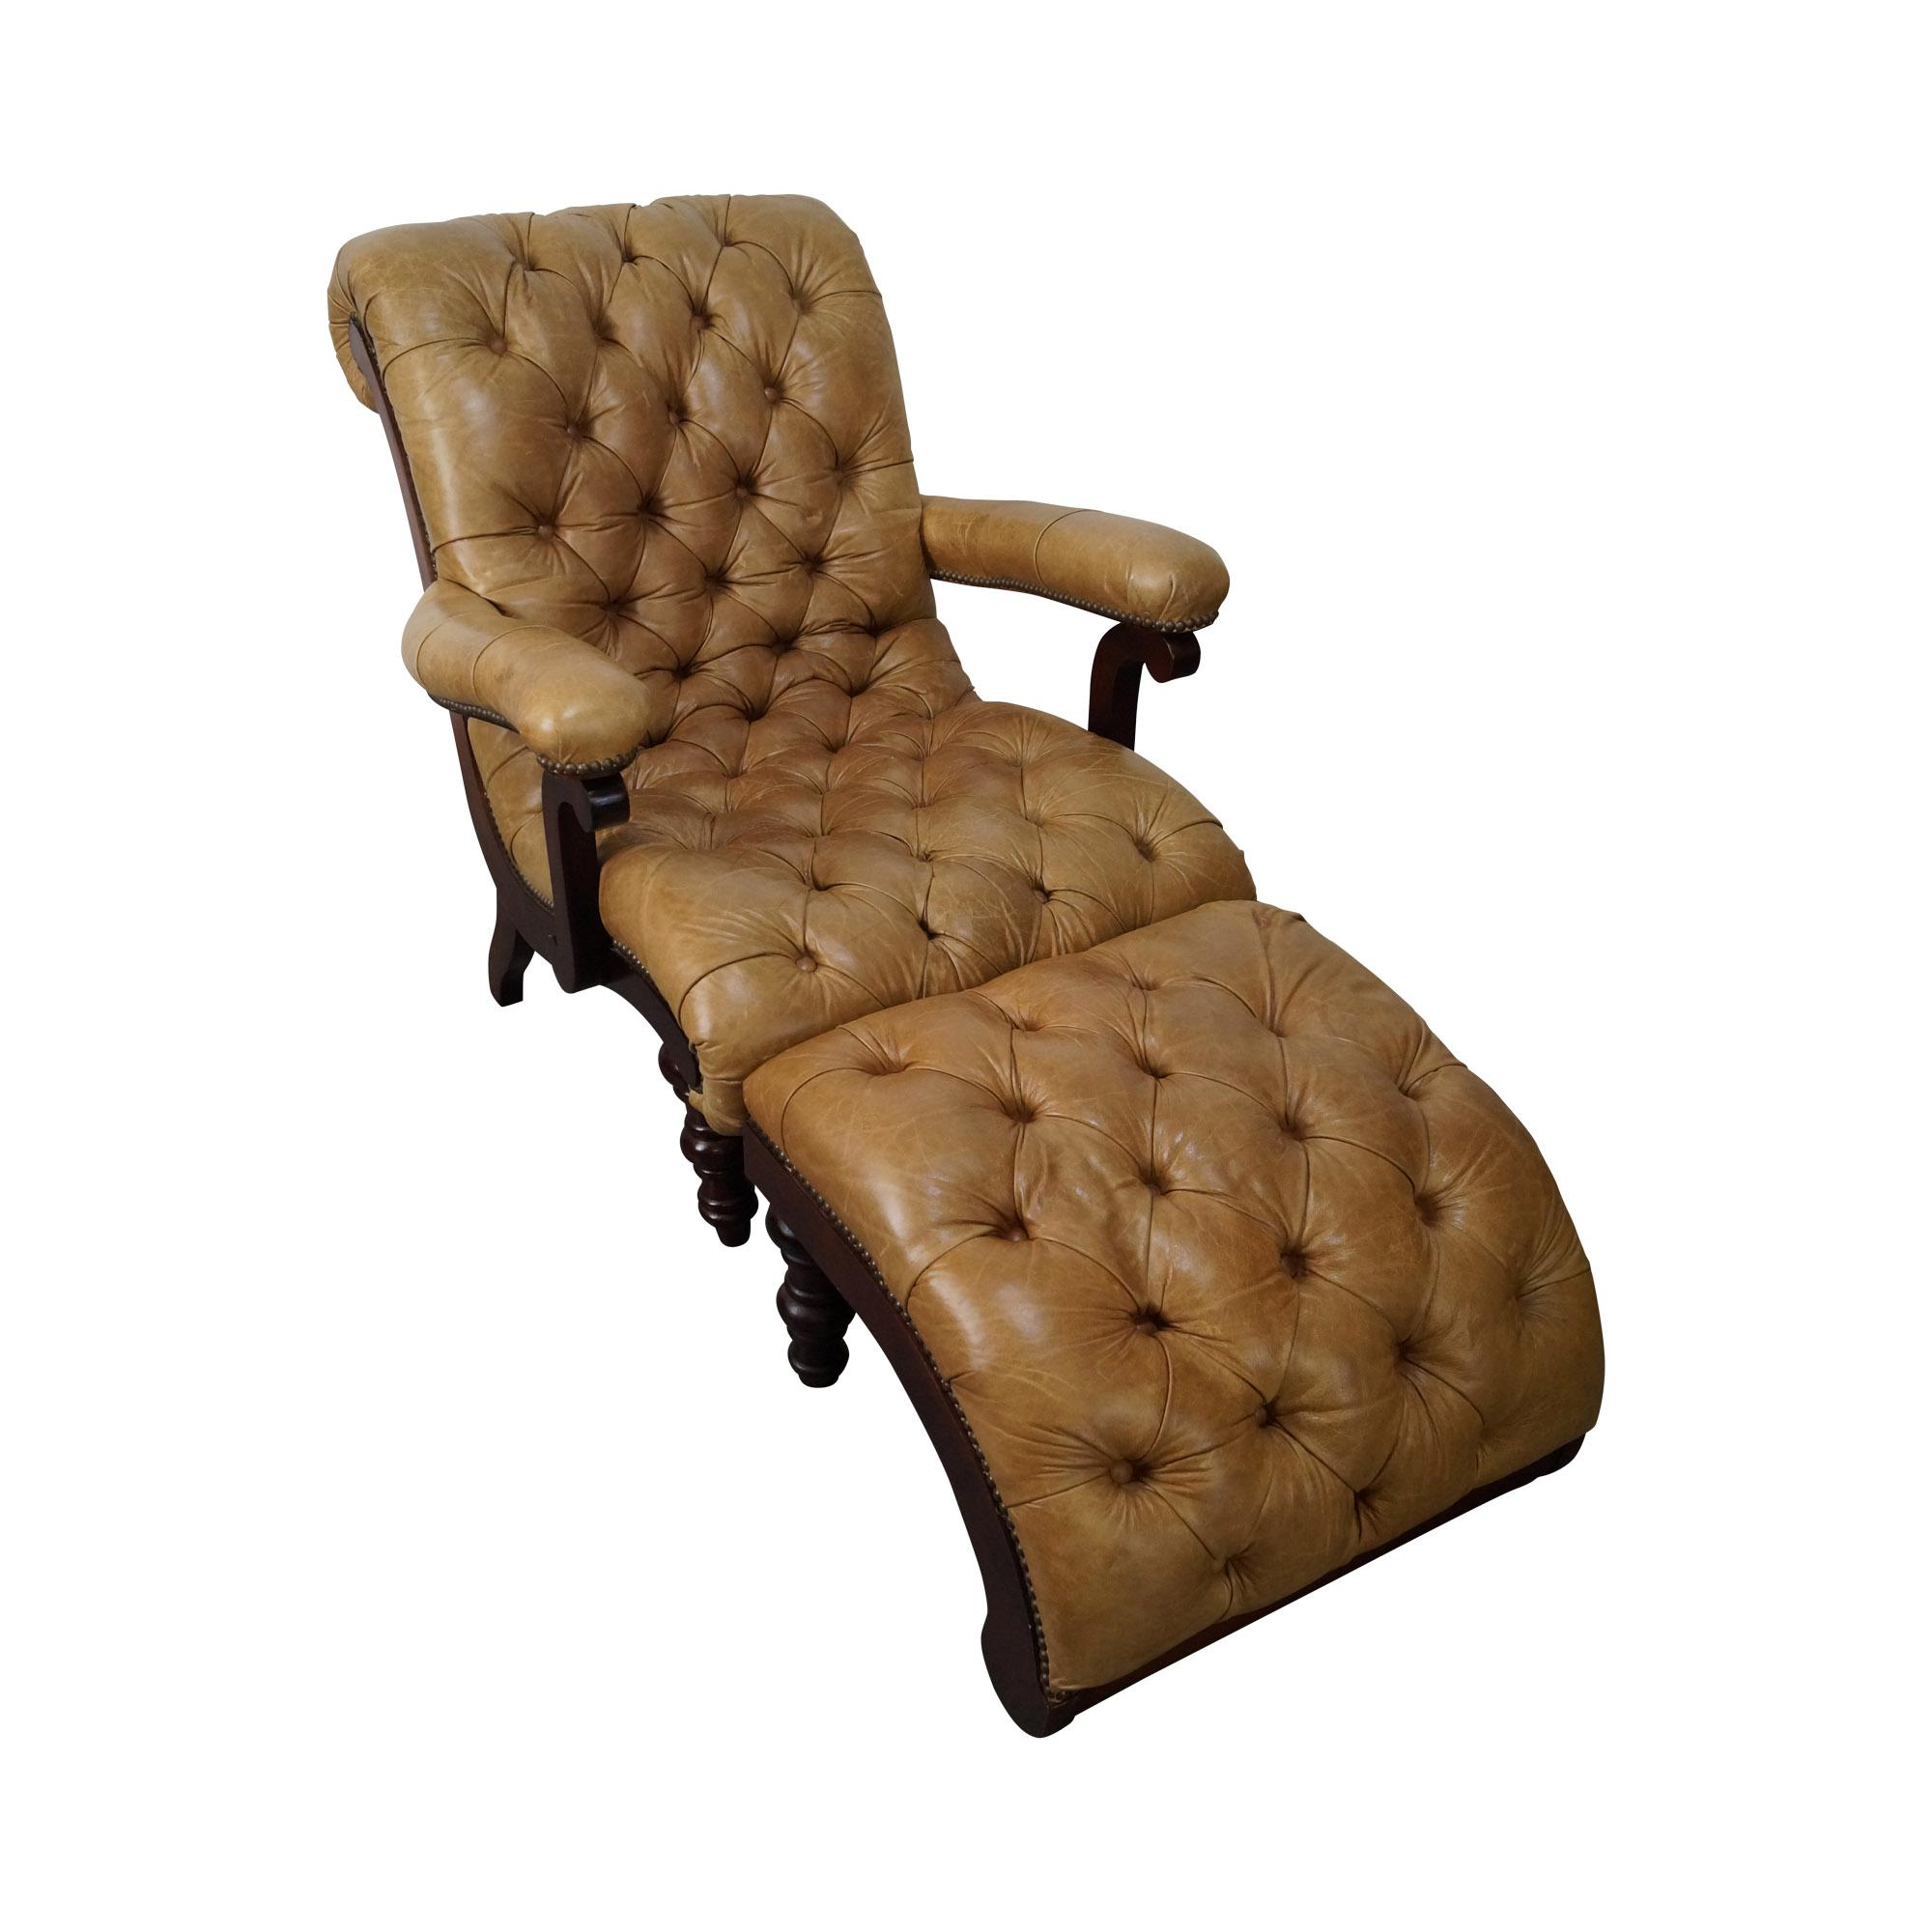 Tufted Leather Chaise Lounge Chair With Ottoman | Chairish